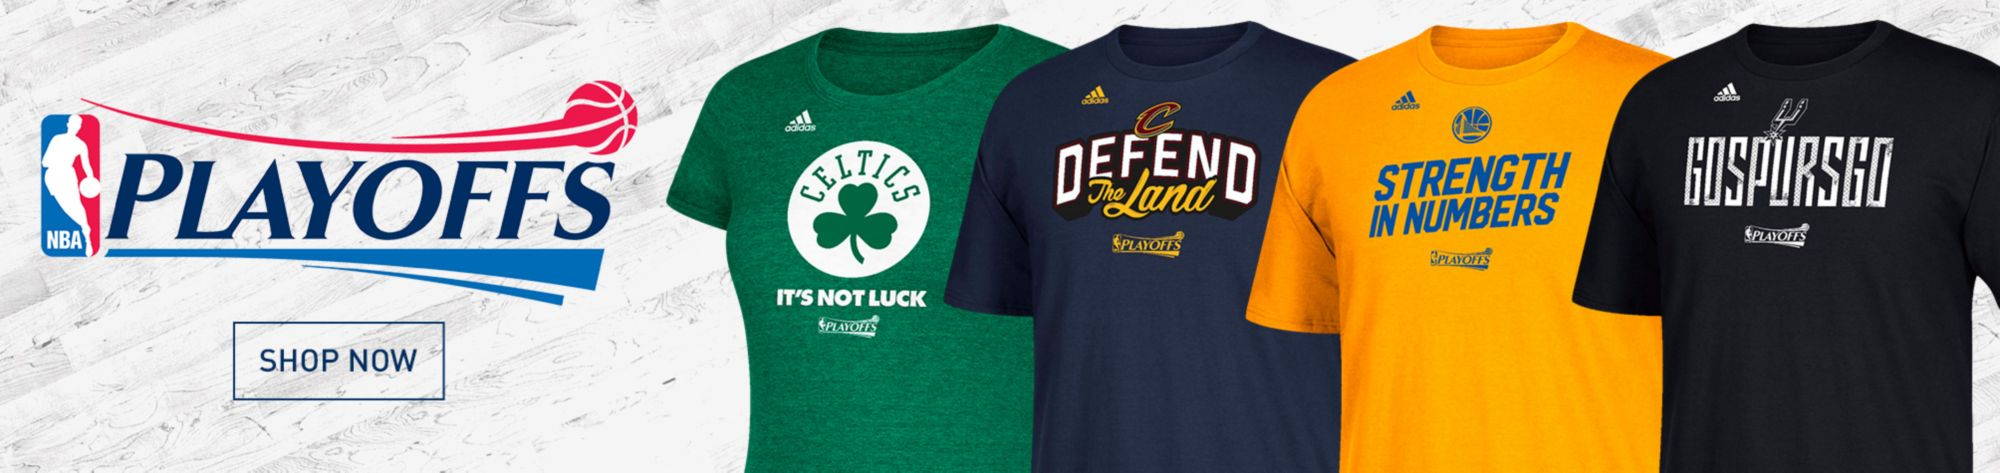 NBA 2017 Playoff Team Gear